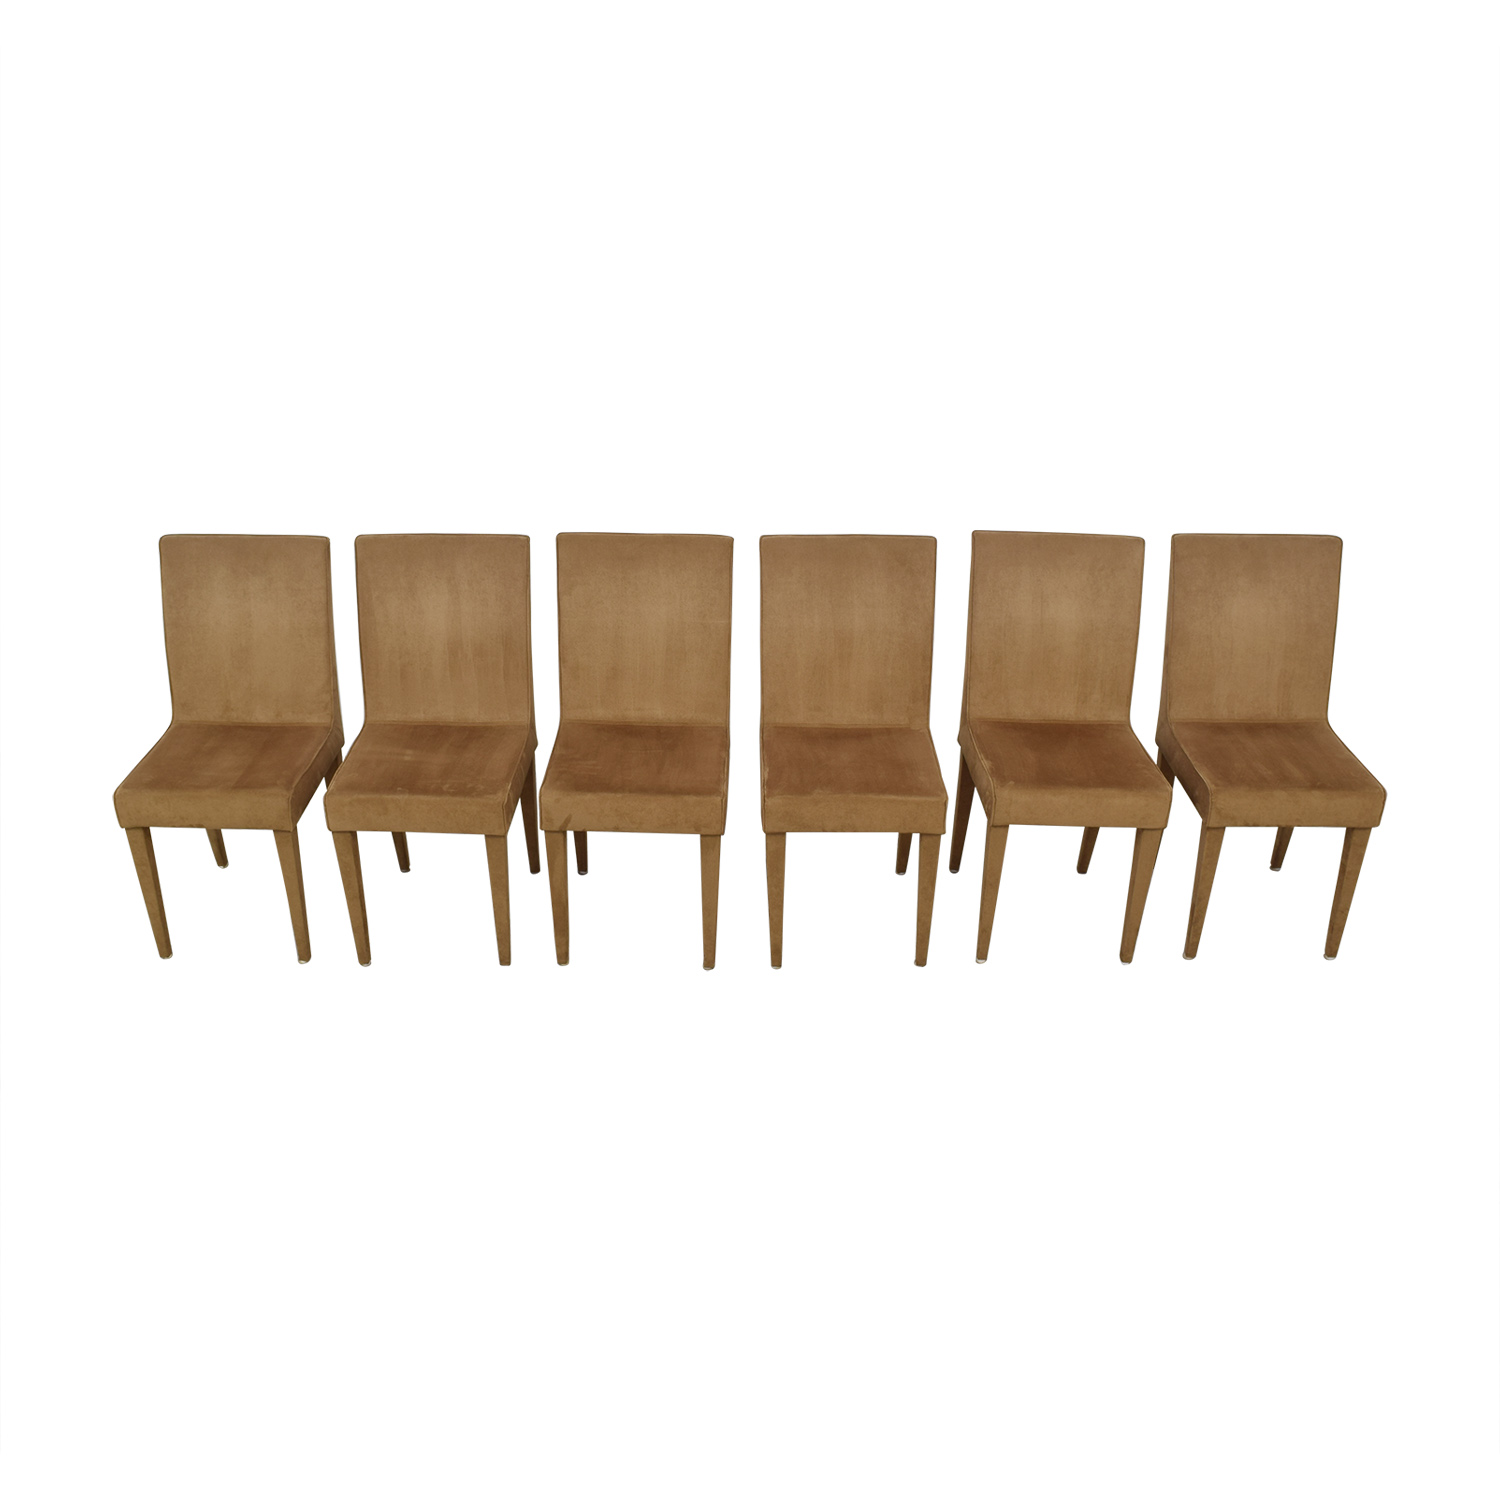 buy DDC DDC Classic Dining Chairs online